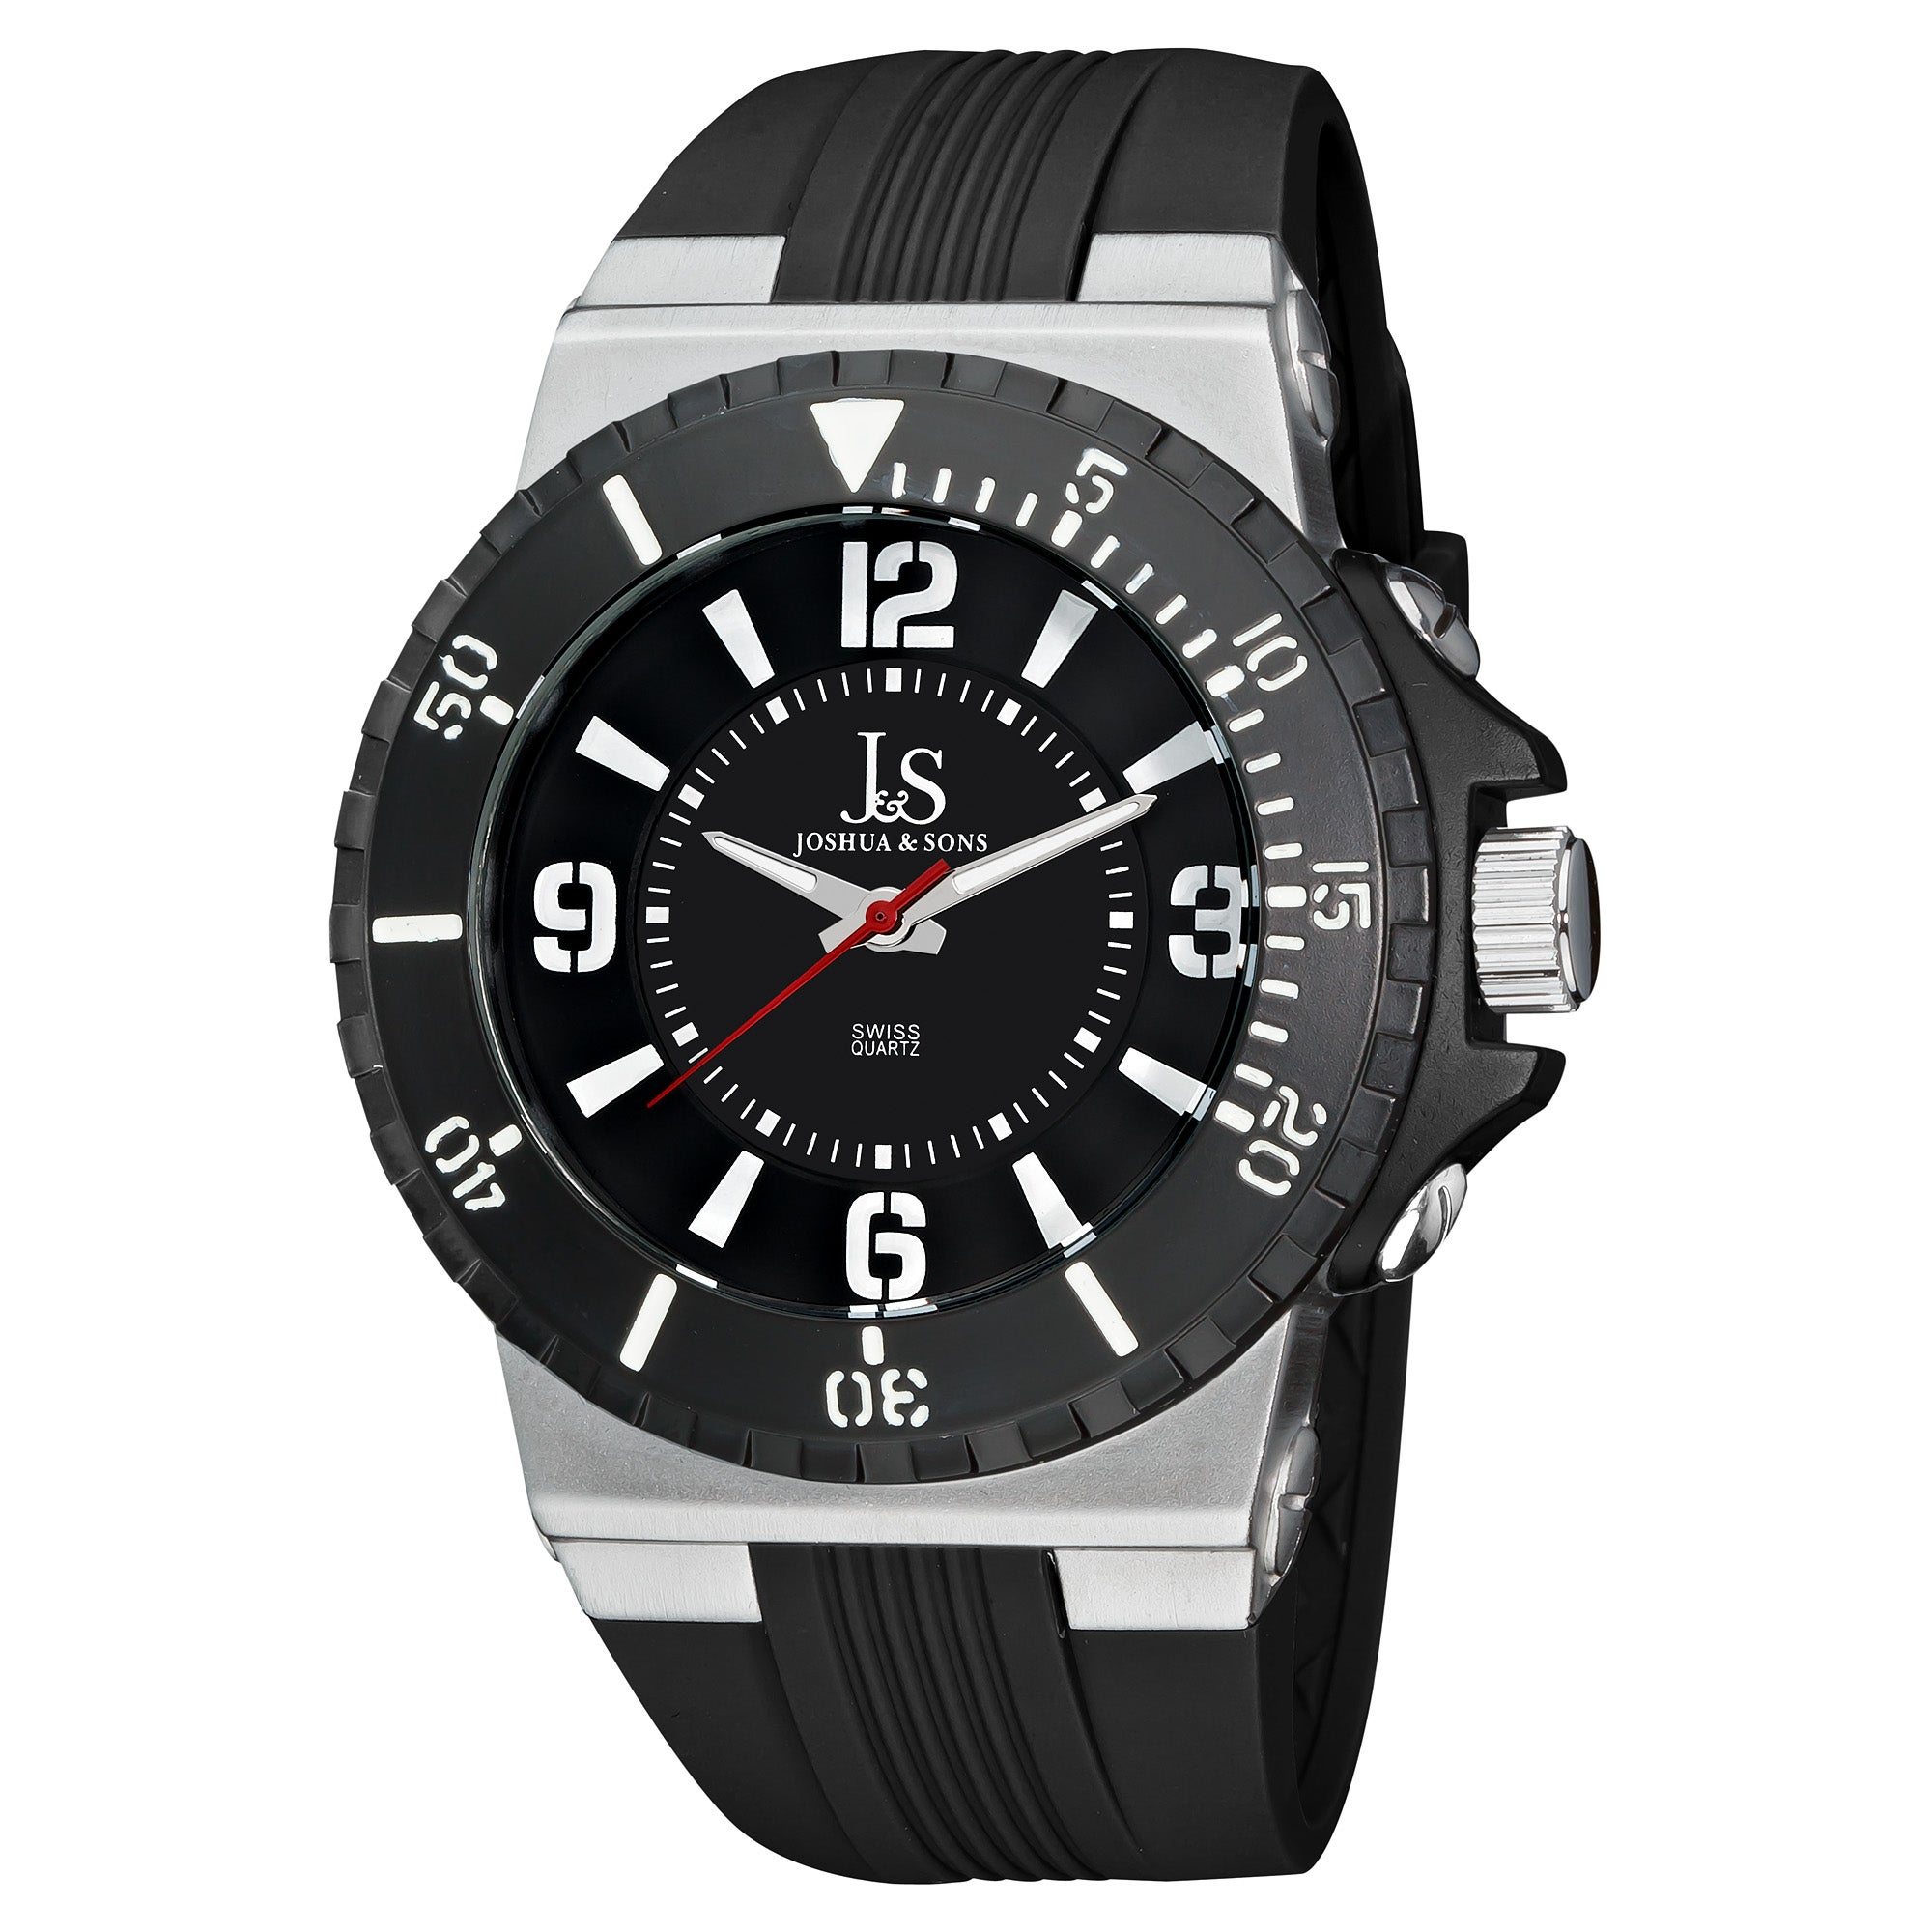 Joshua & Sons Men's Bold Swiss Quartz Water-Resistant Silicon Strap Watch